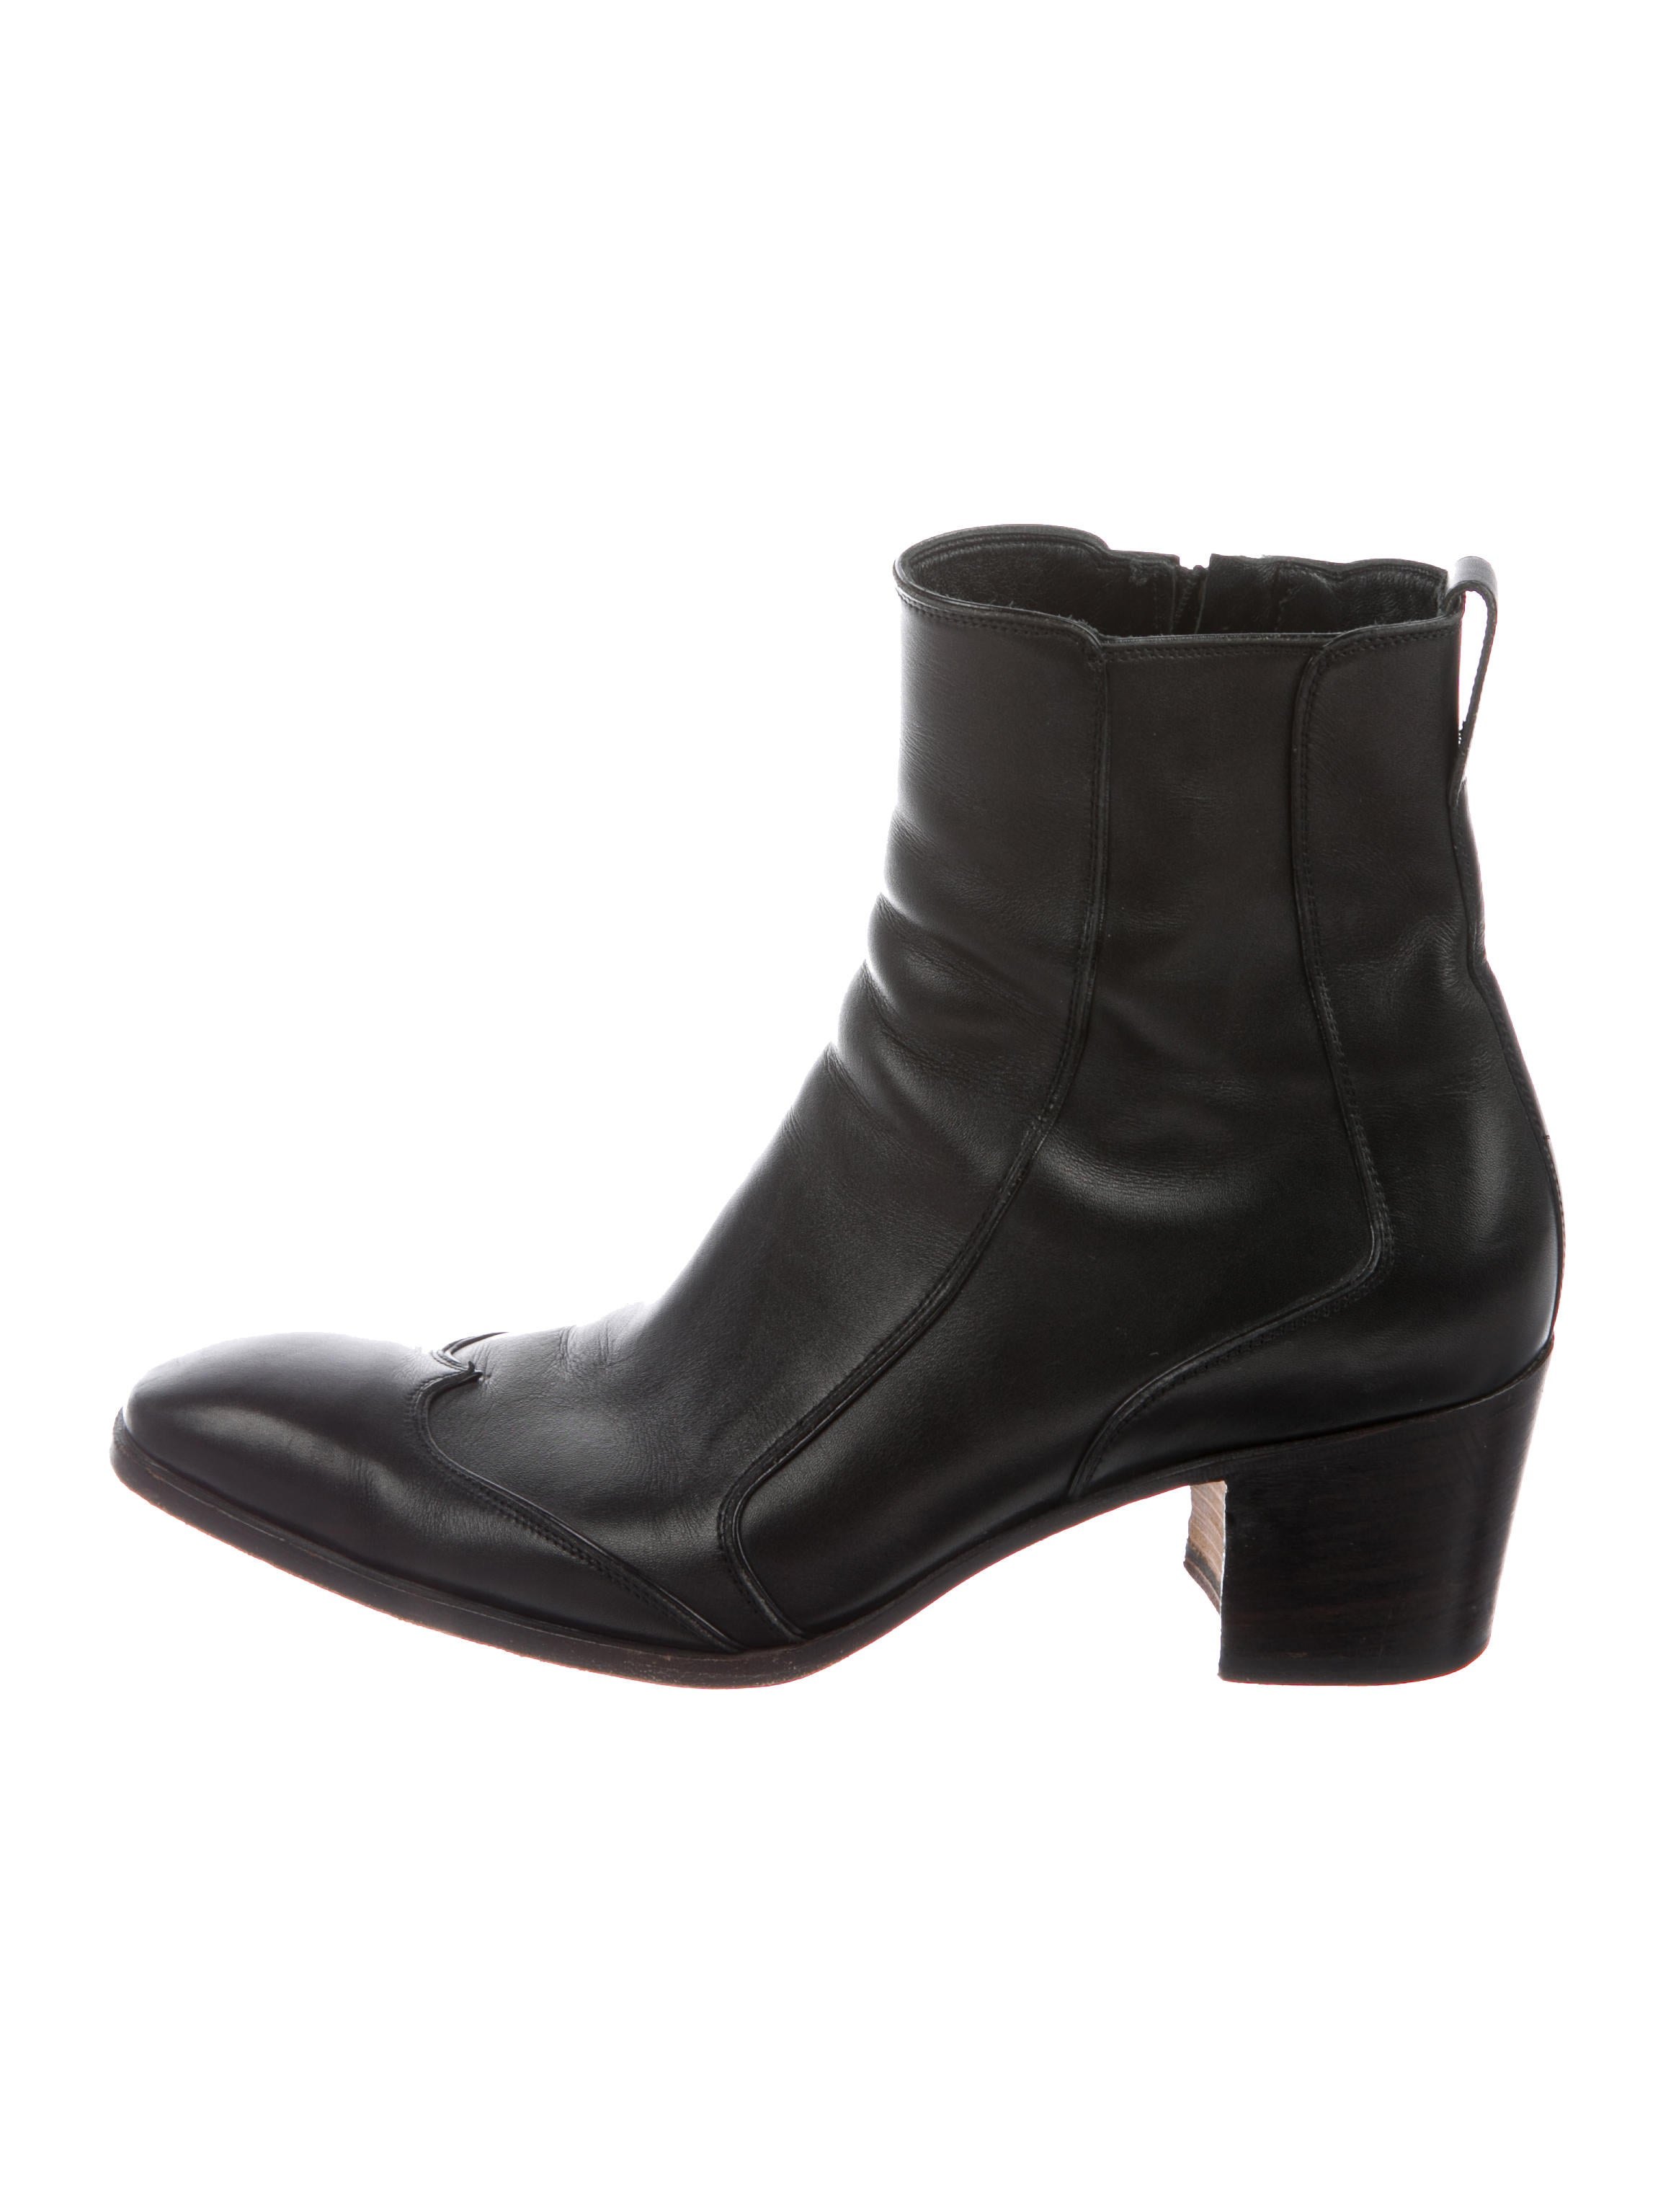 5f8a2803be1 Yves Saint Laurent Johnny 65 Boots - Shoes - 0YV10068 | The RealReal